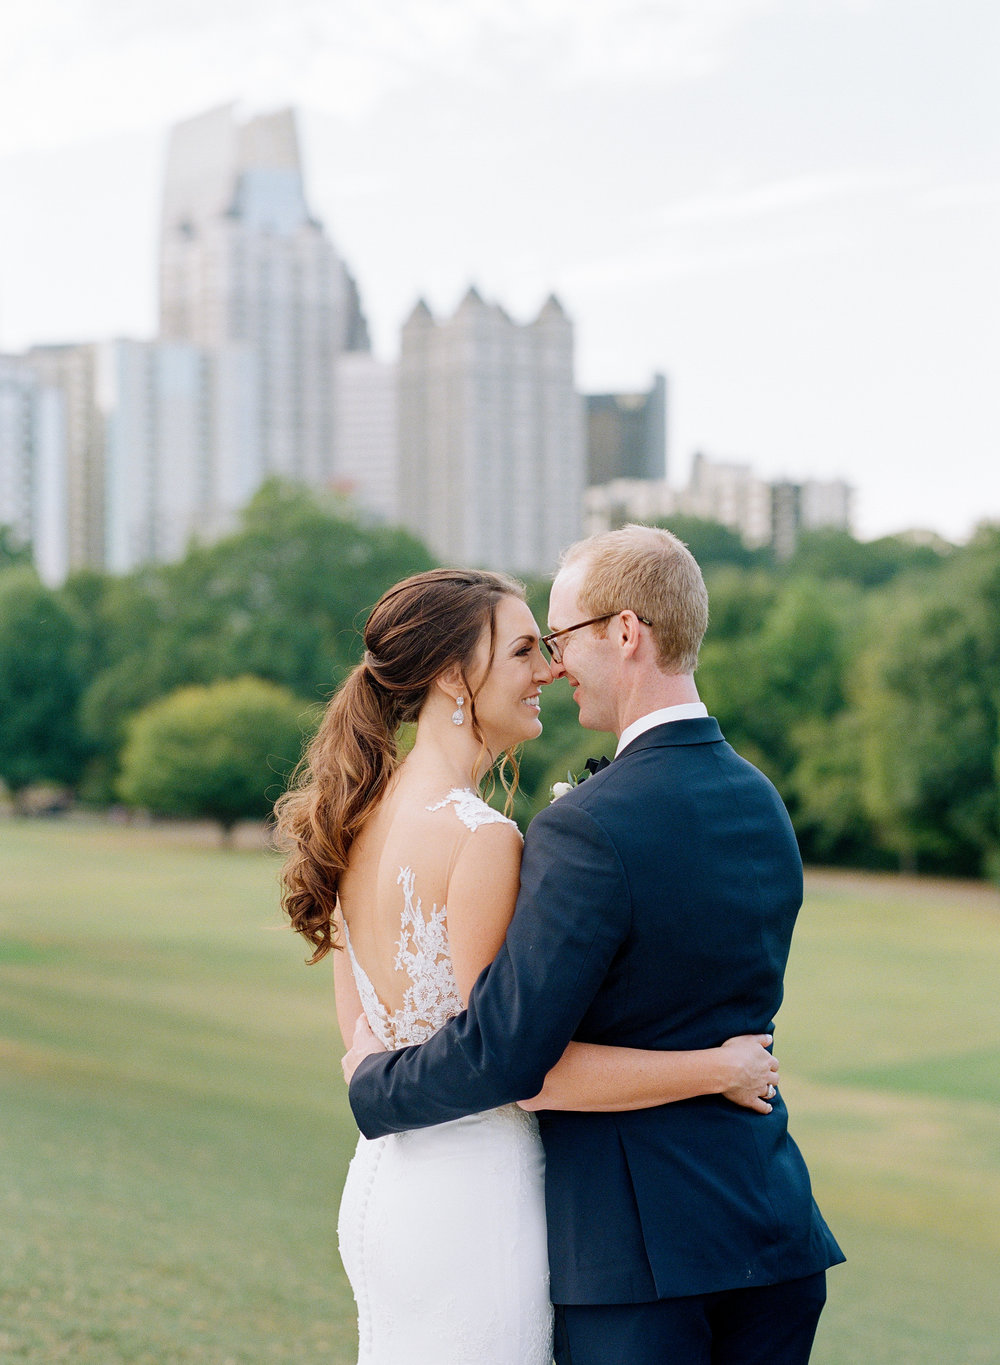 The Greystone at Piedmont Park Wedding - Carrie Joy Photography-1089.jpg